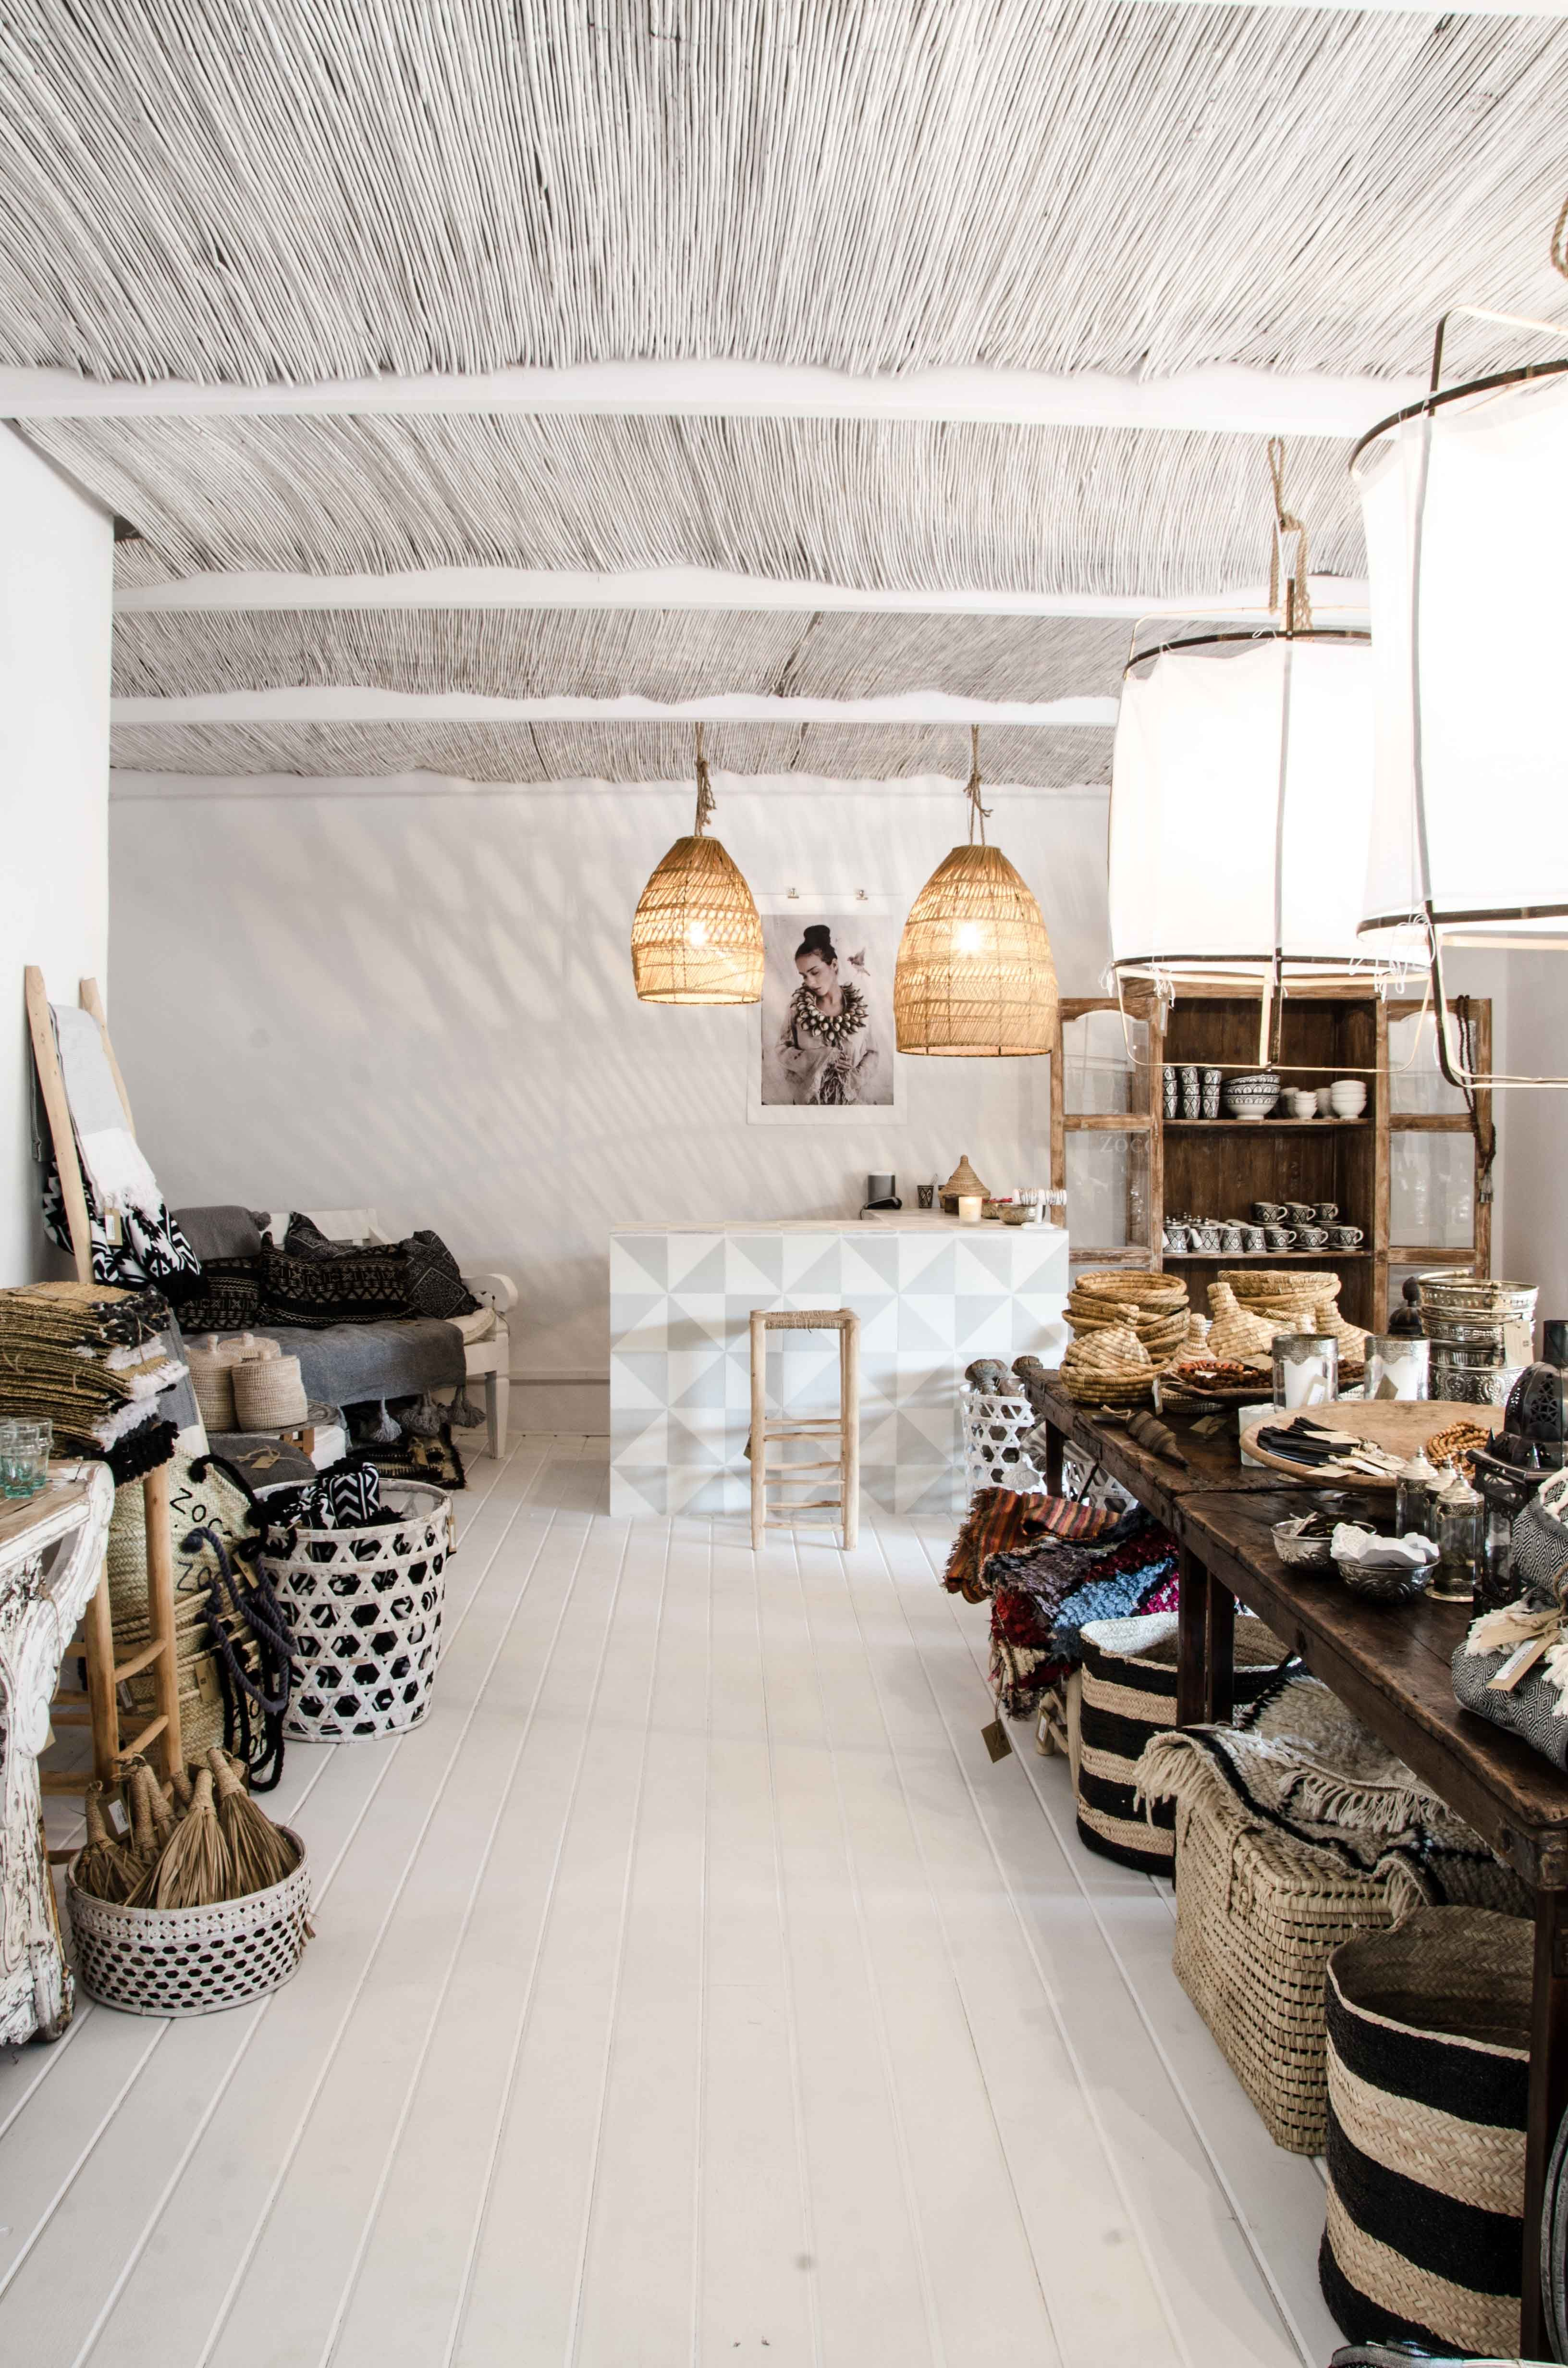 zoco home concept store mijas spain shop love pinterest zoco home moroccan and ethnic decoration store